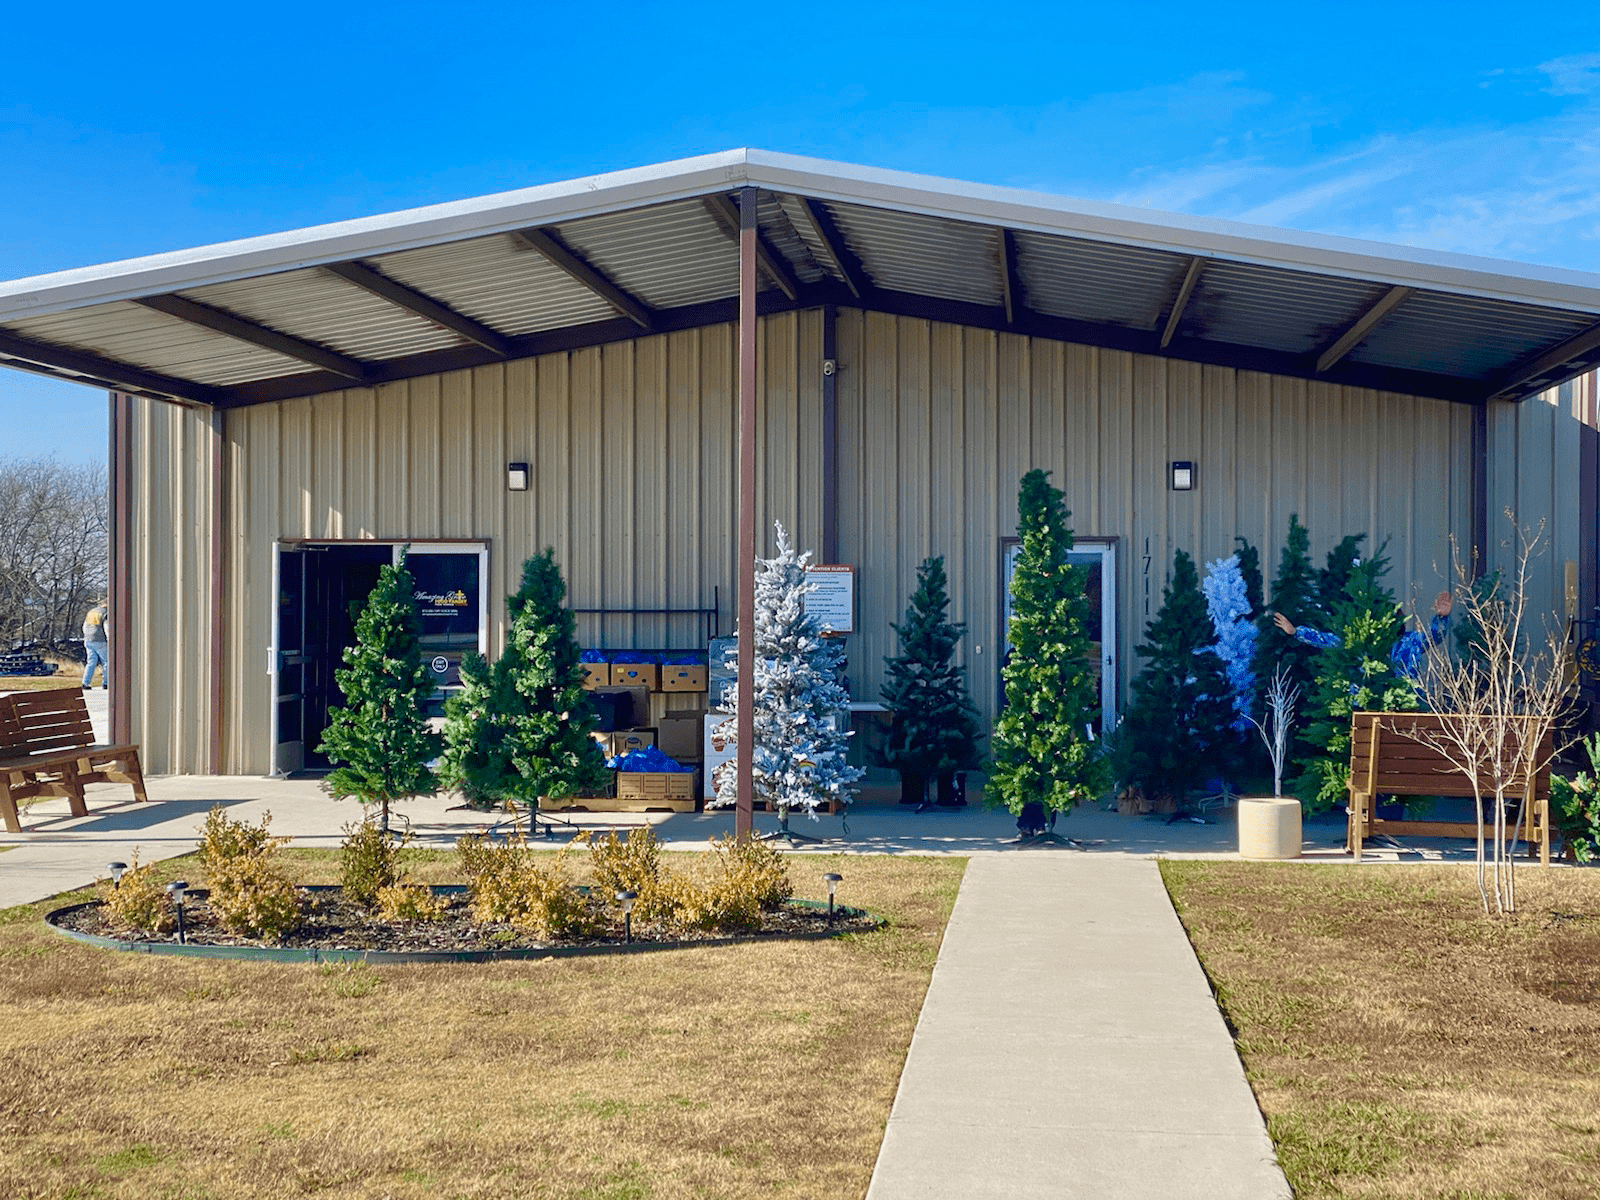 Christmas Trees at Amazing Grace Food Pantry